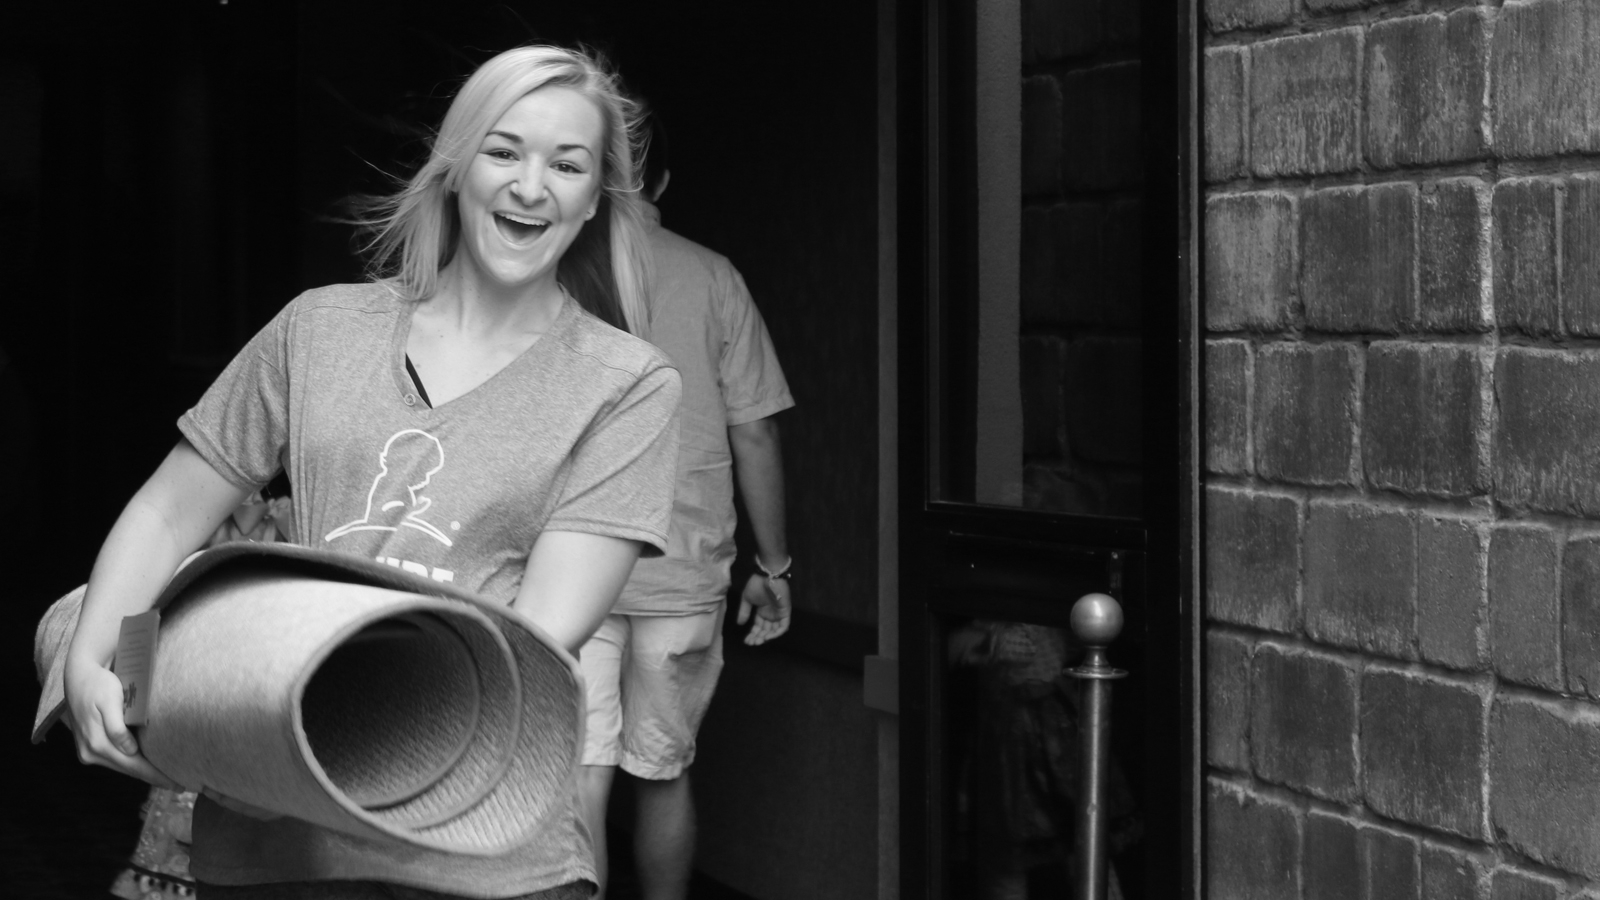 LET'S SERVE TOGETHER - You can make a difference! From working with kids to preparing spaces to playing music or hosting guests… there's a place for you to serve at BELIEVING.